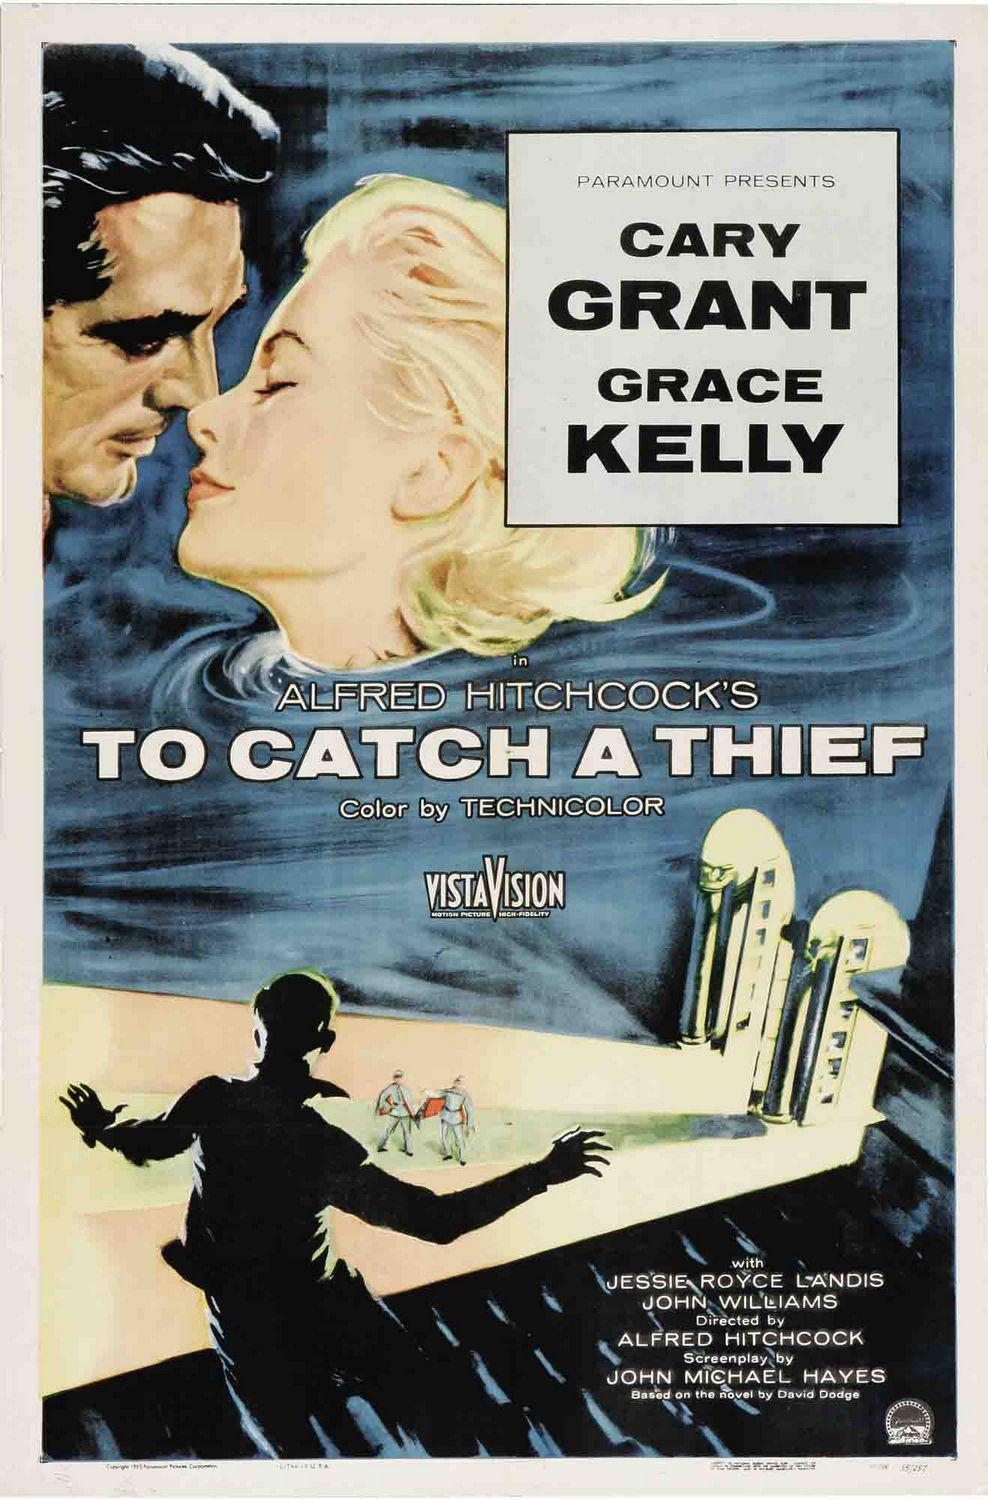 Caccia al Ladro - To Catch a Thief - Cary Grant - Grace Kelly - Alfred Hitchcock